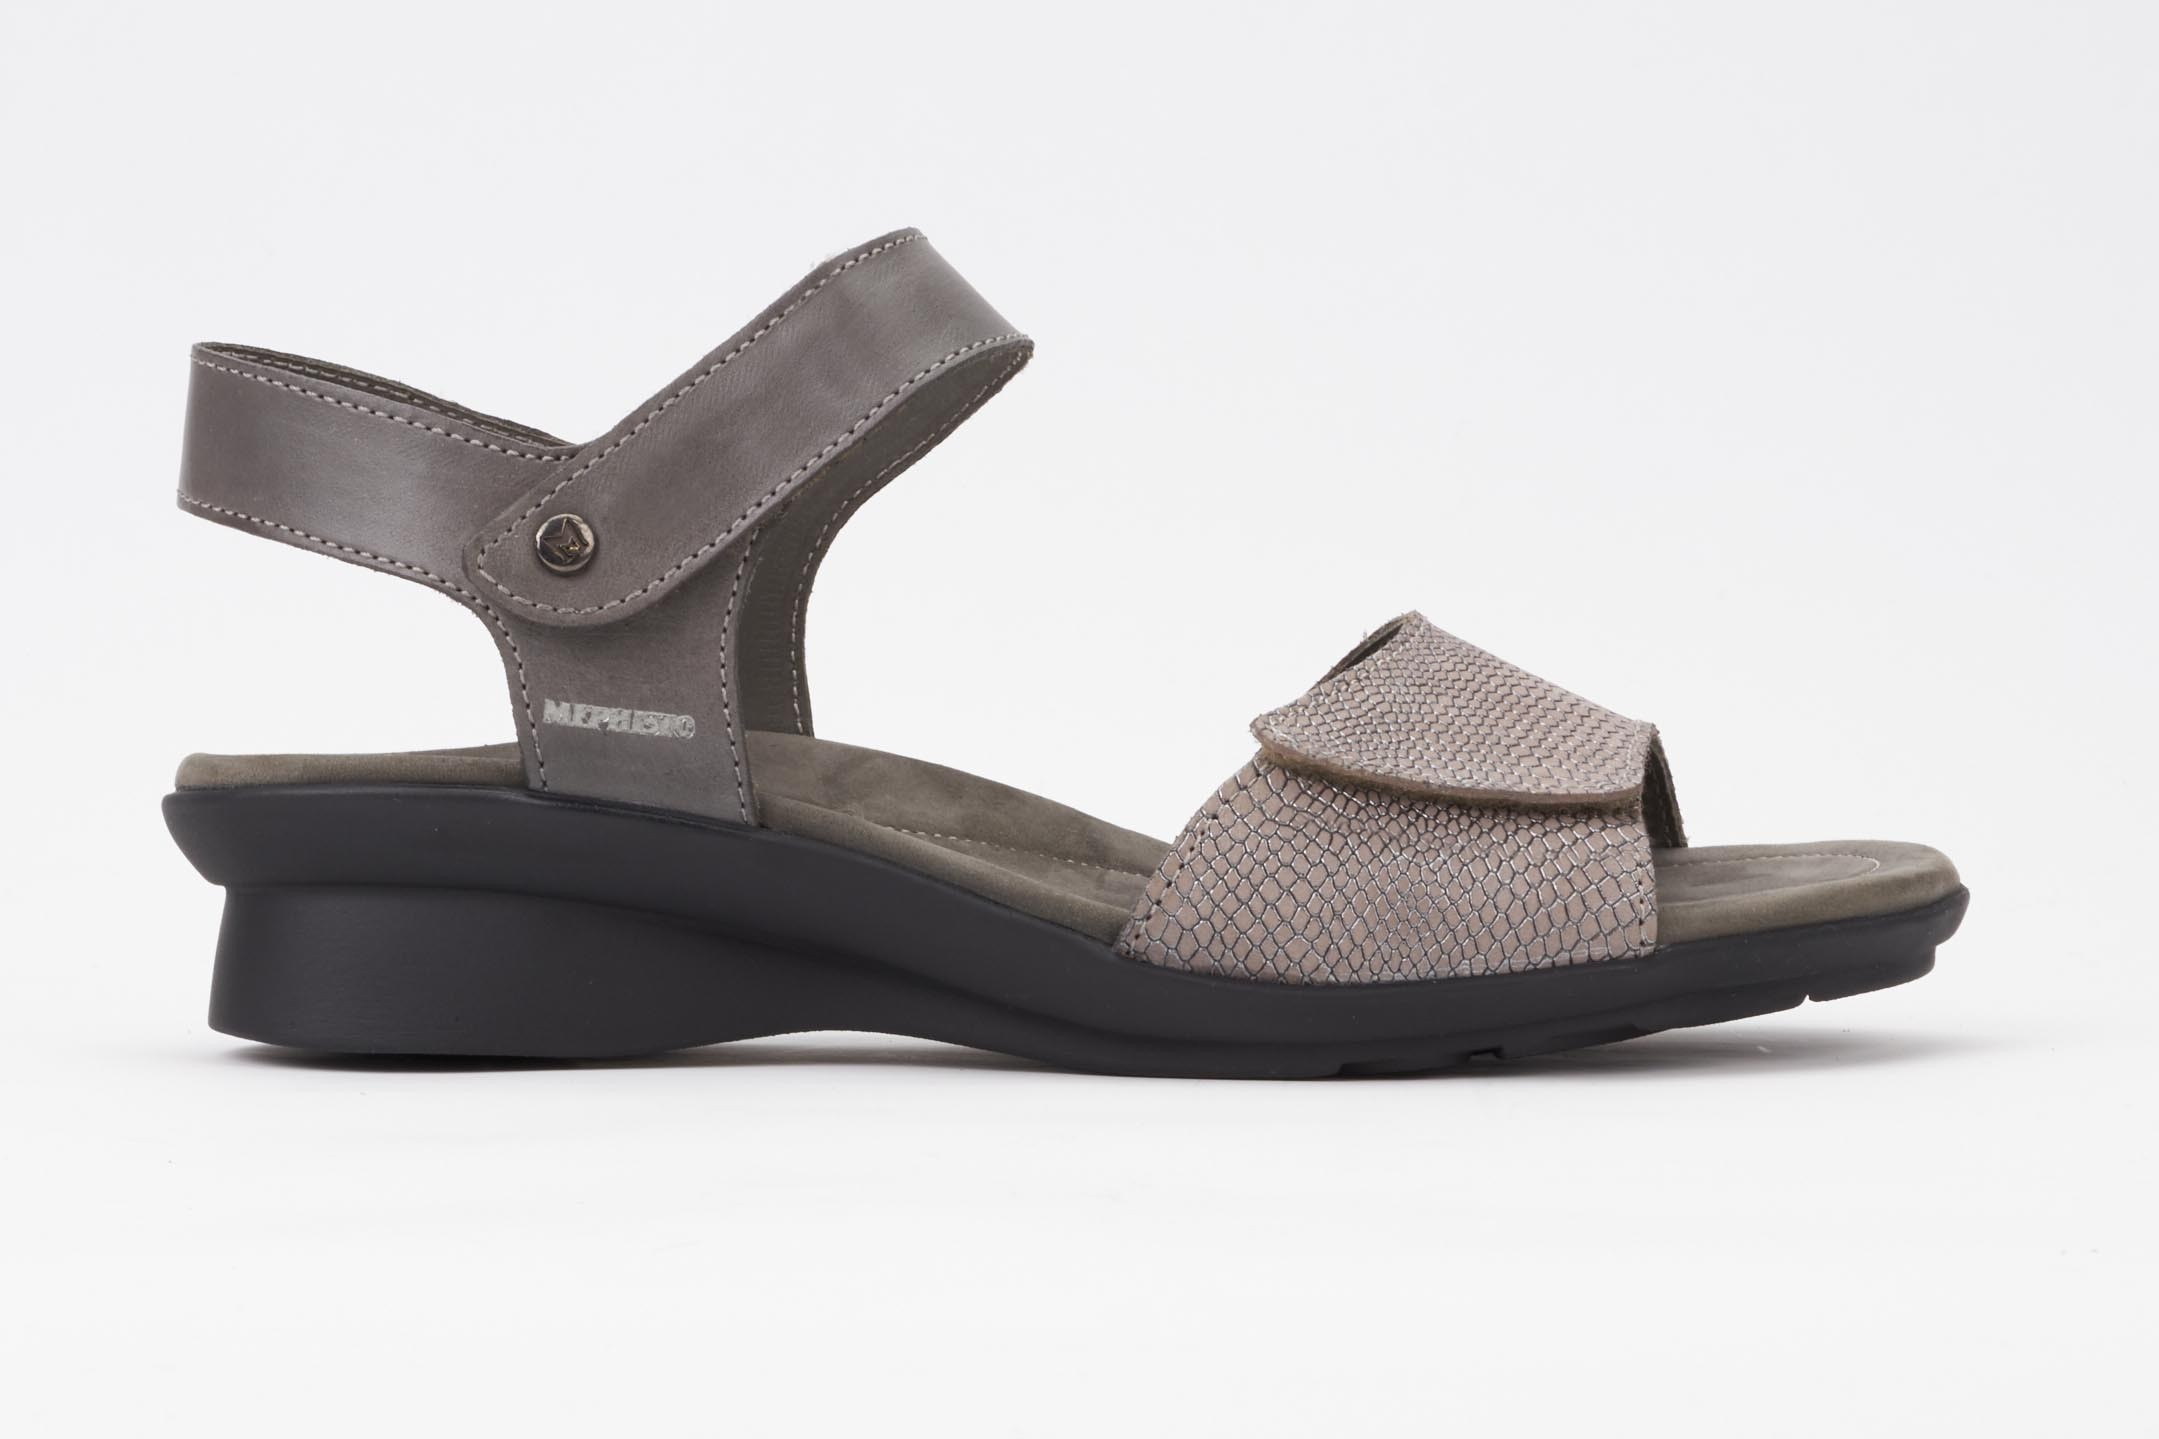 f5839fe1b1e PATTIE Sandal - MEPHISTO Women's Ankle Strap Sandals | Smooth leather, dark  grey